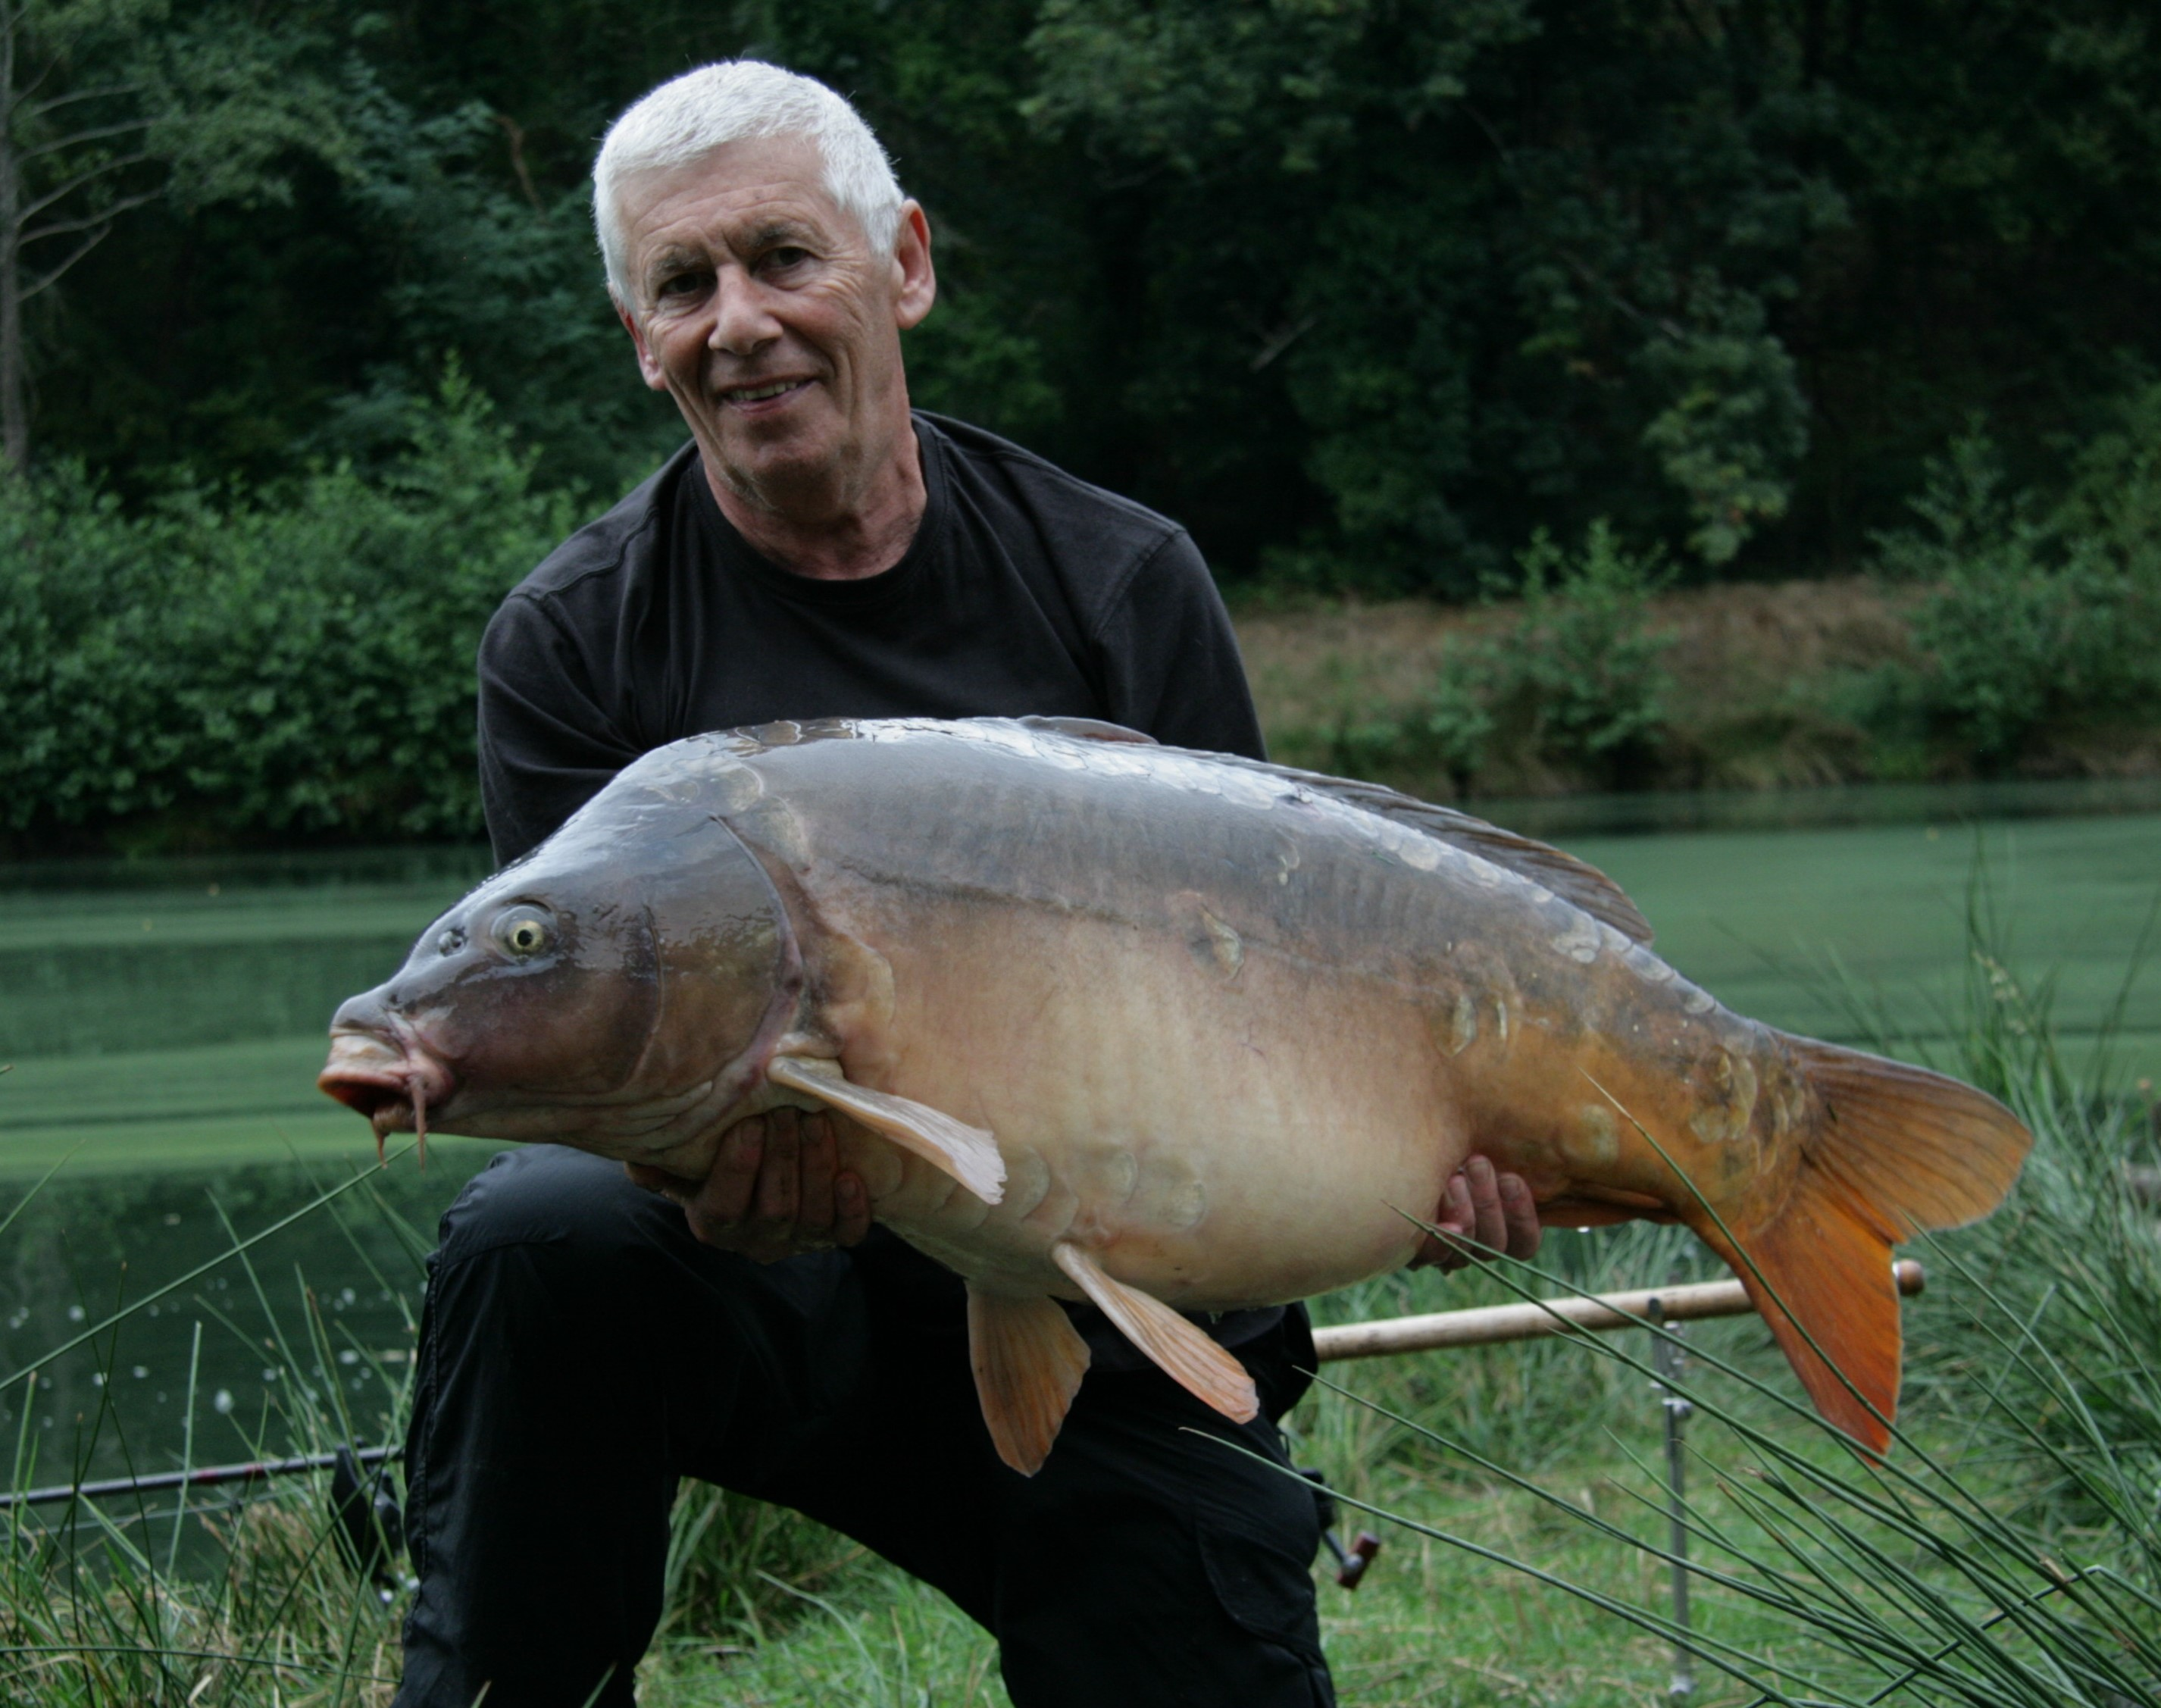 https://www.puyravaudcarp.com/wp-content/uploads/2016/10/44.051.jpg